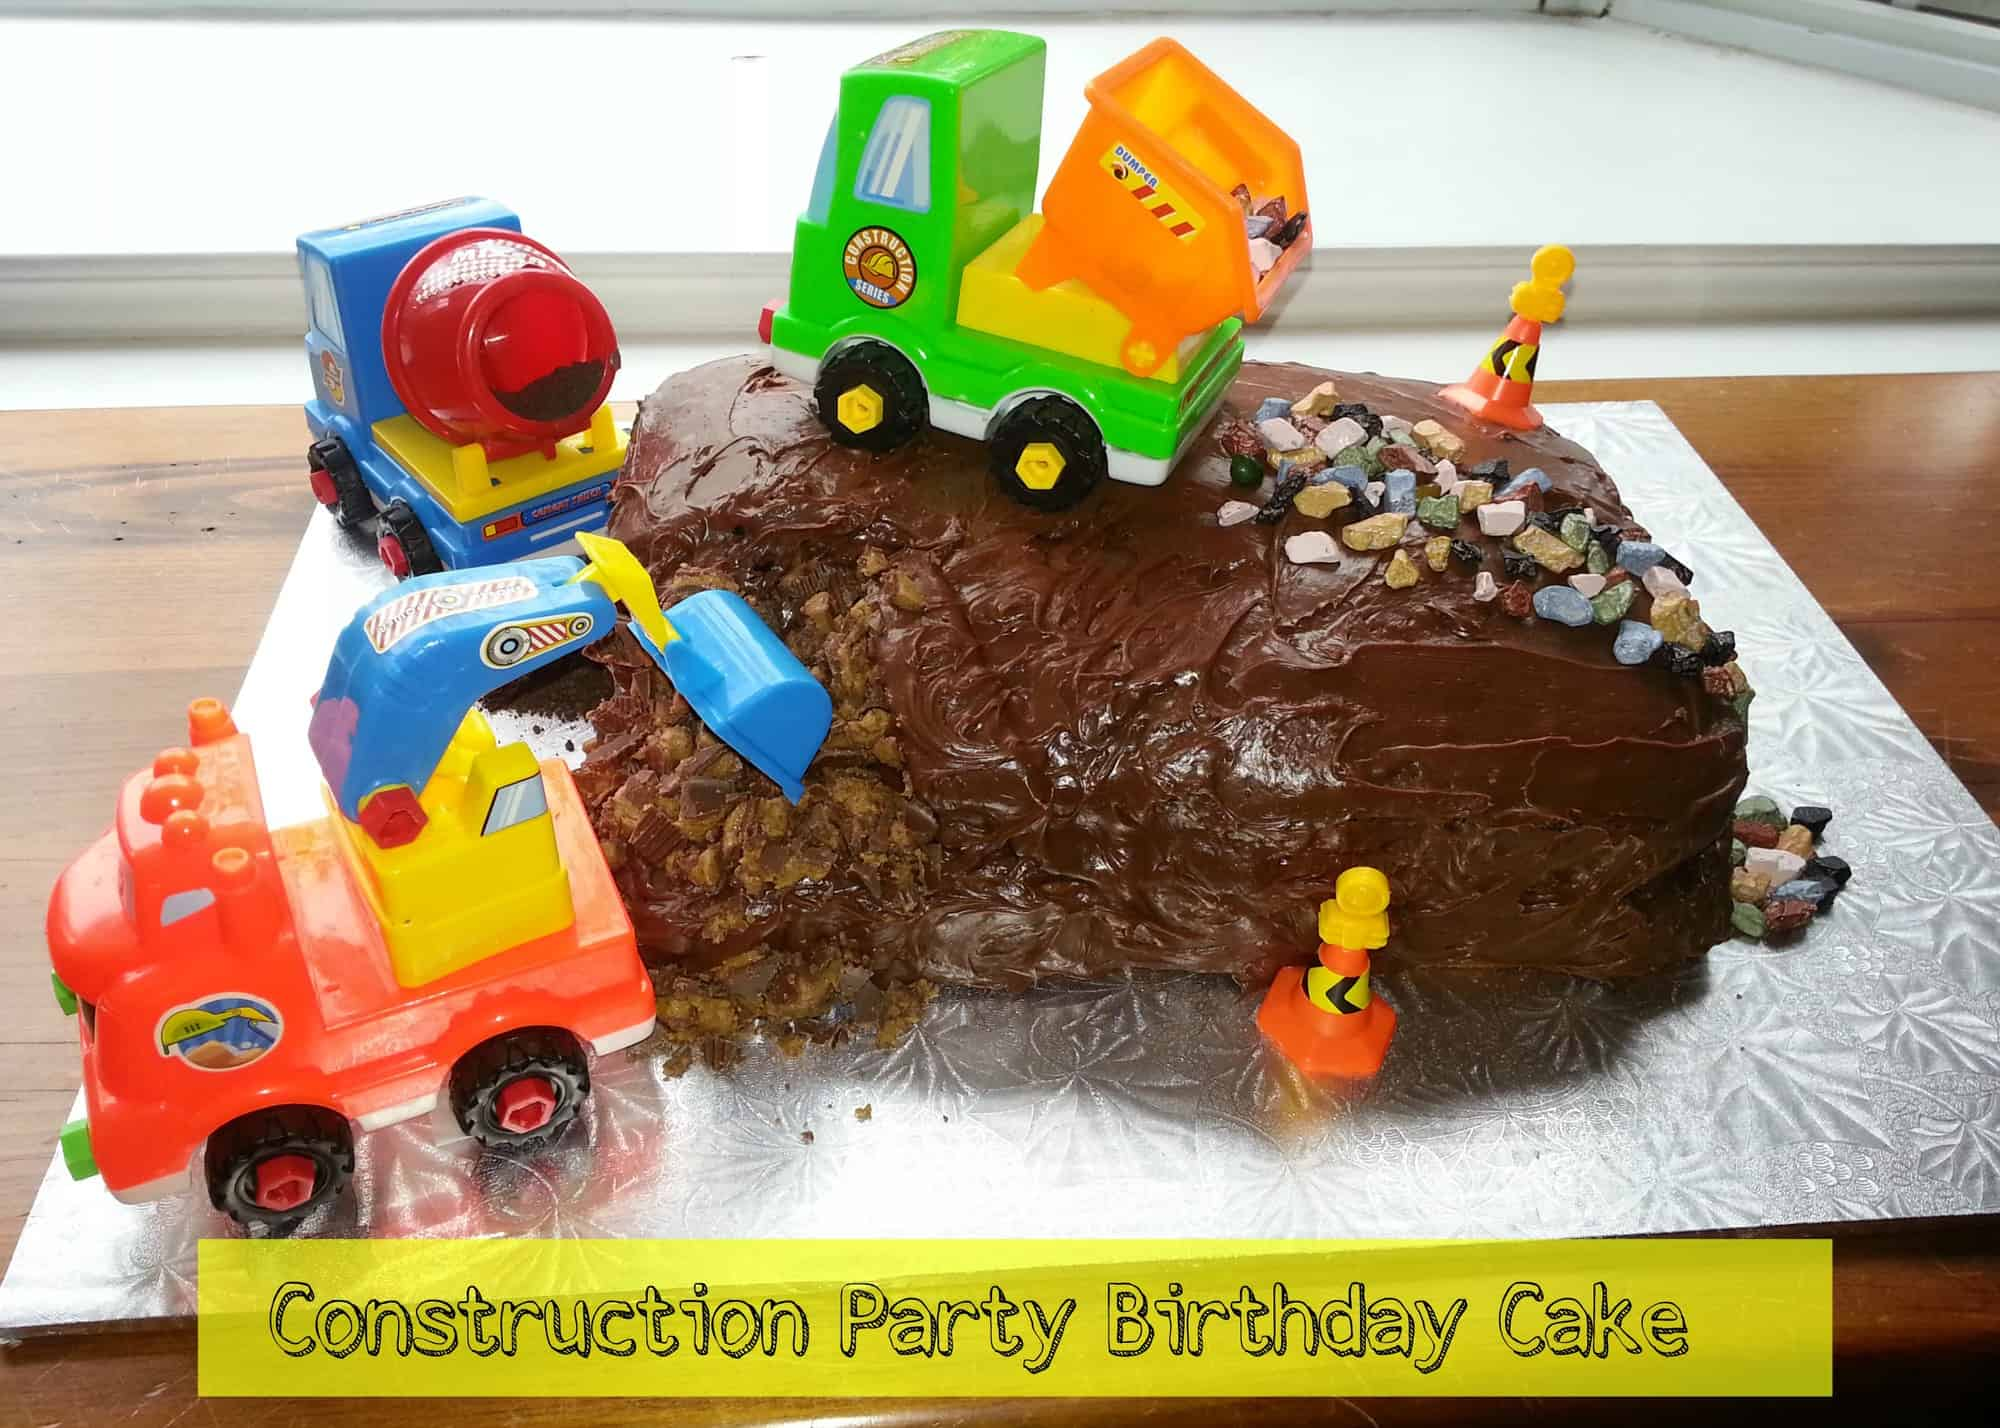 Construction Birthday Party Cake Idea